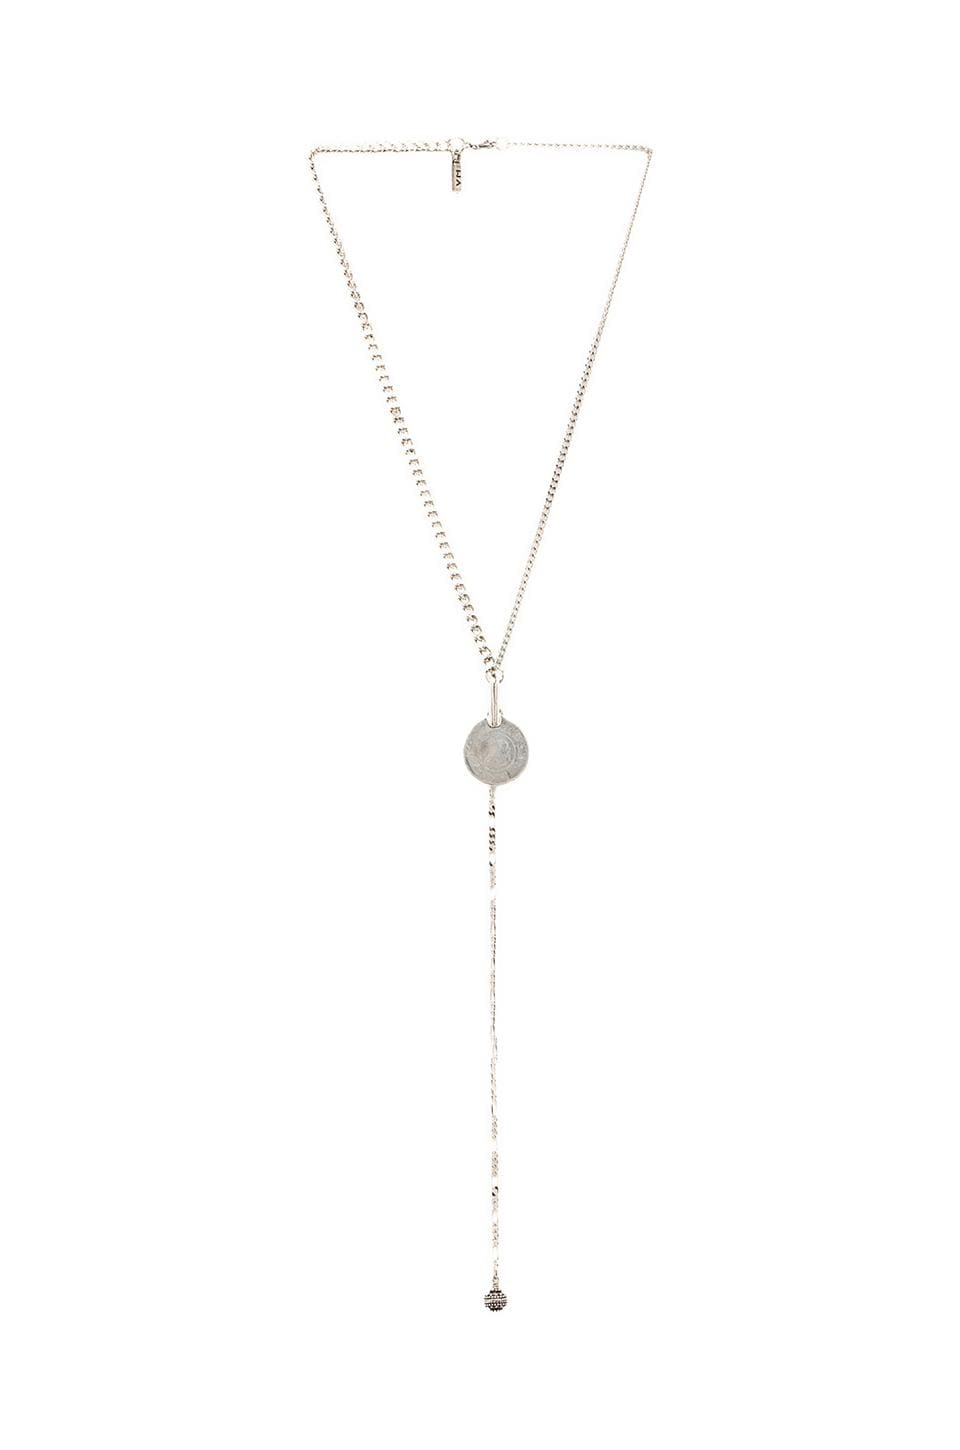 Vanessa Mooney Le Vida Boheme Rosary Necklace in Silver